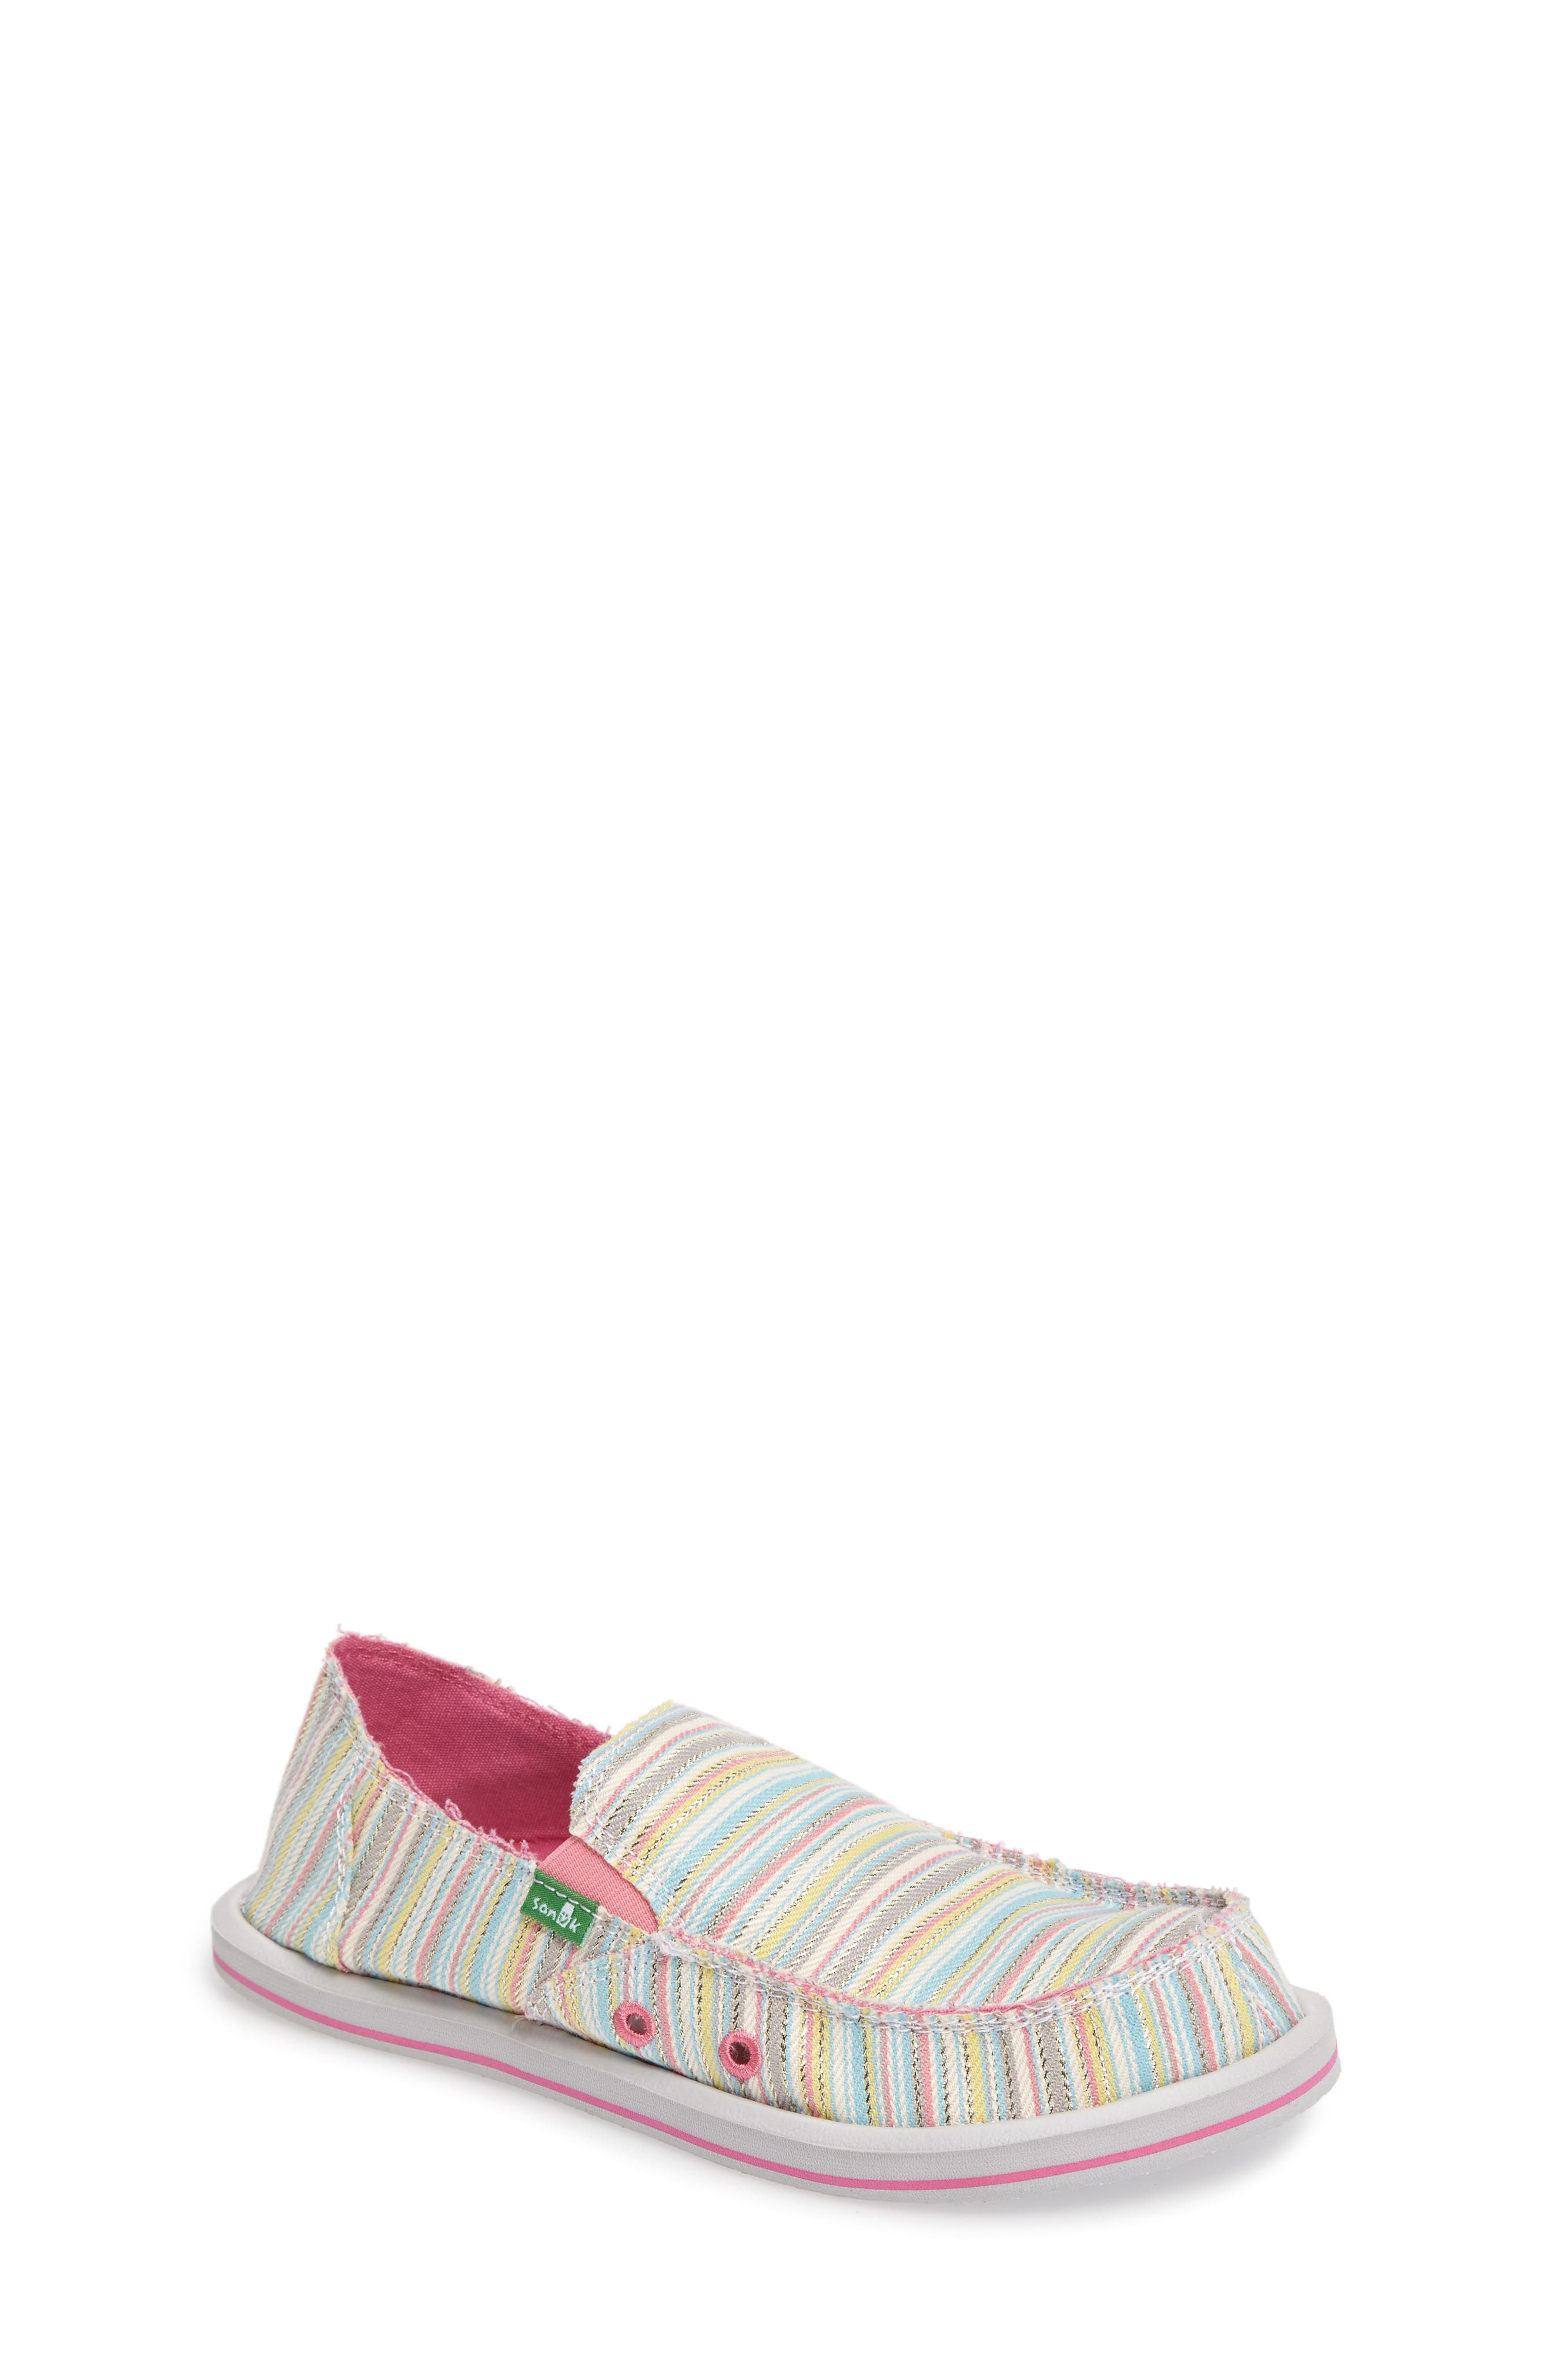 'Donna - Poncho' Vegan Slip-On,                             Main thumbnail 1, color,                             Aqua/ Pink Pinstripe